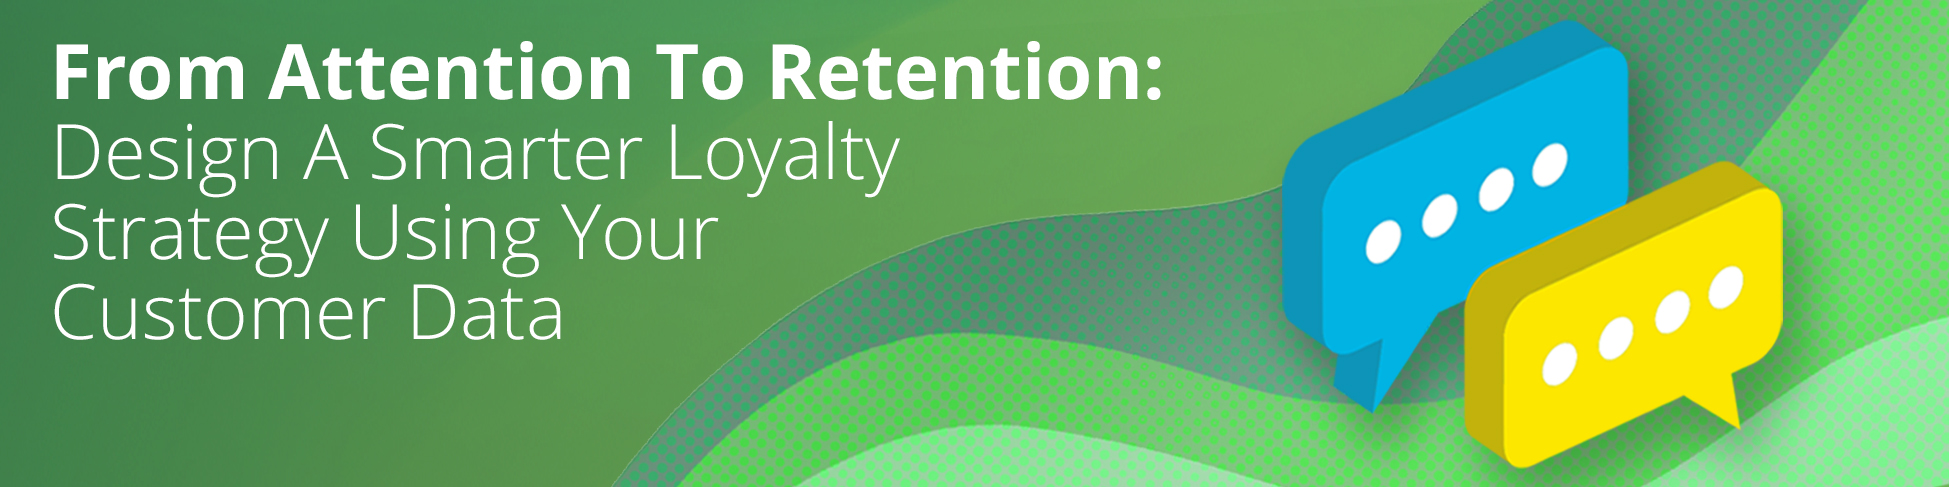 From Attention To Retention: Data-Driven Loyalty Case Study Webinar